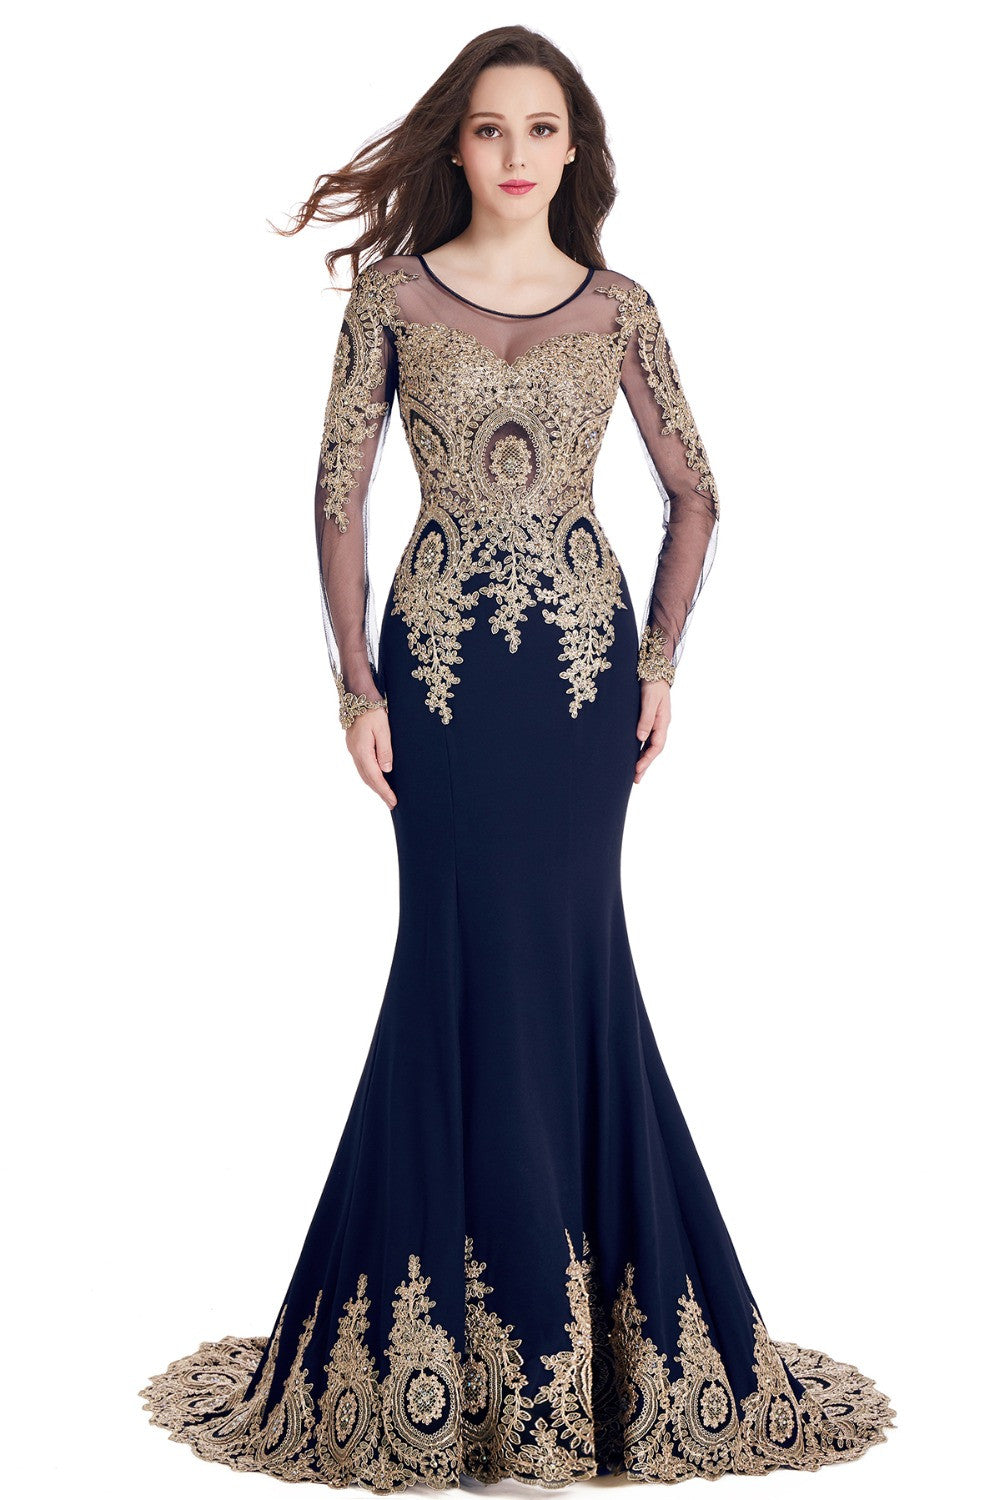 c47dfa4ddac Black And Gold Prom Dresses 2017 - Gomes Weine AG